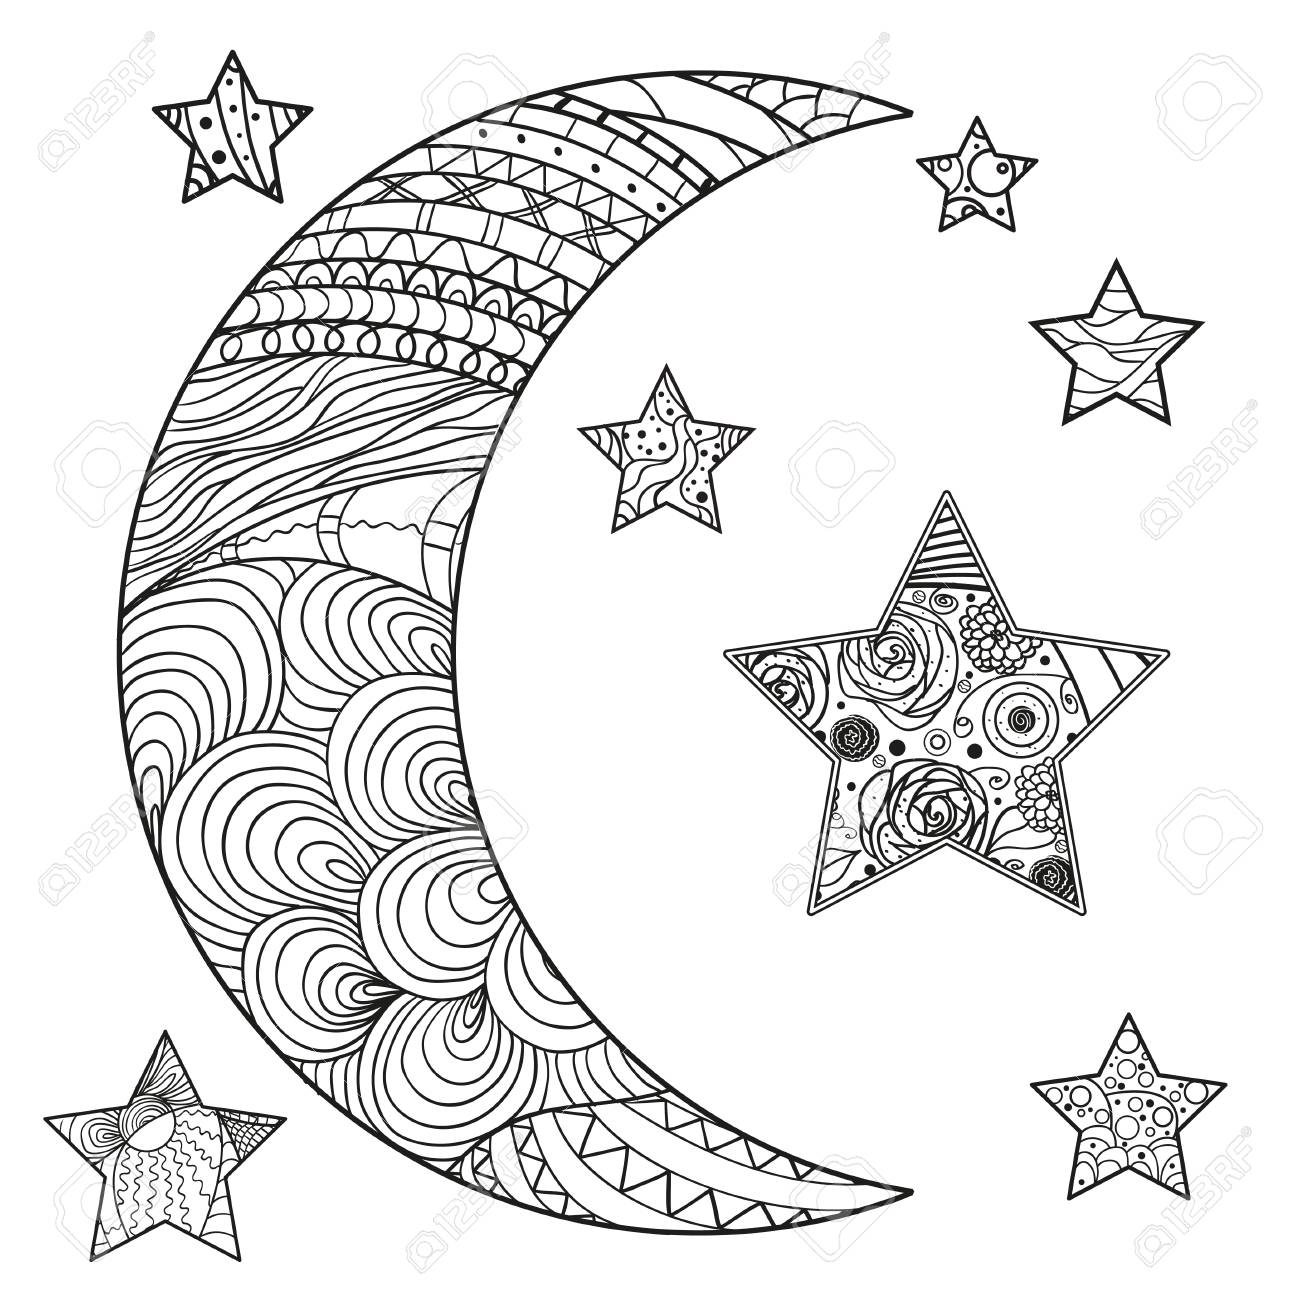 Zentangle moon and star with abstract patterns on isolation background